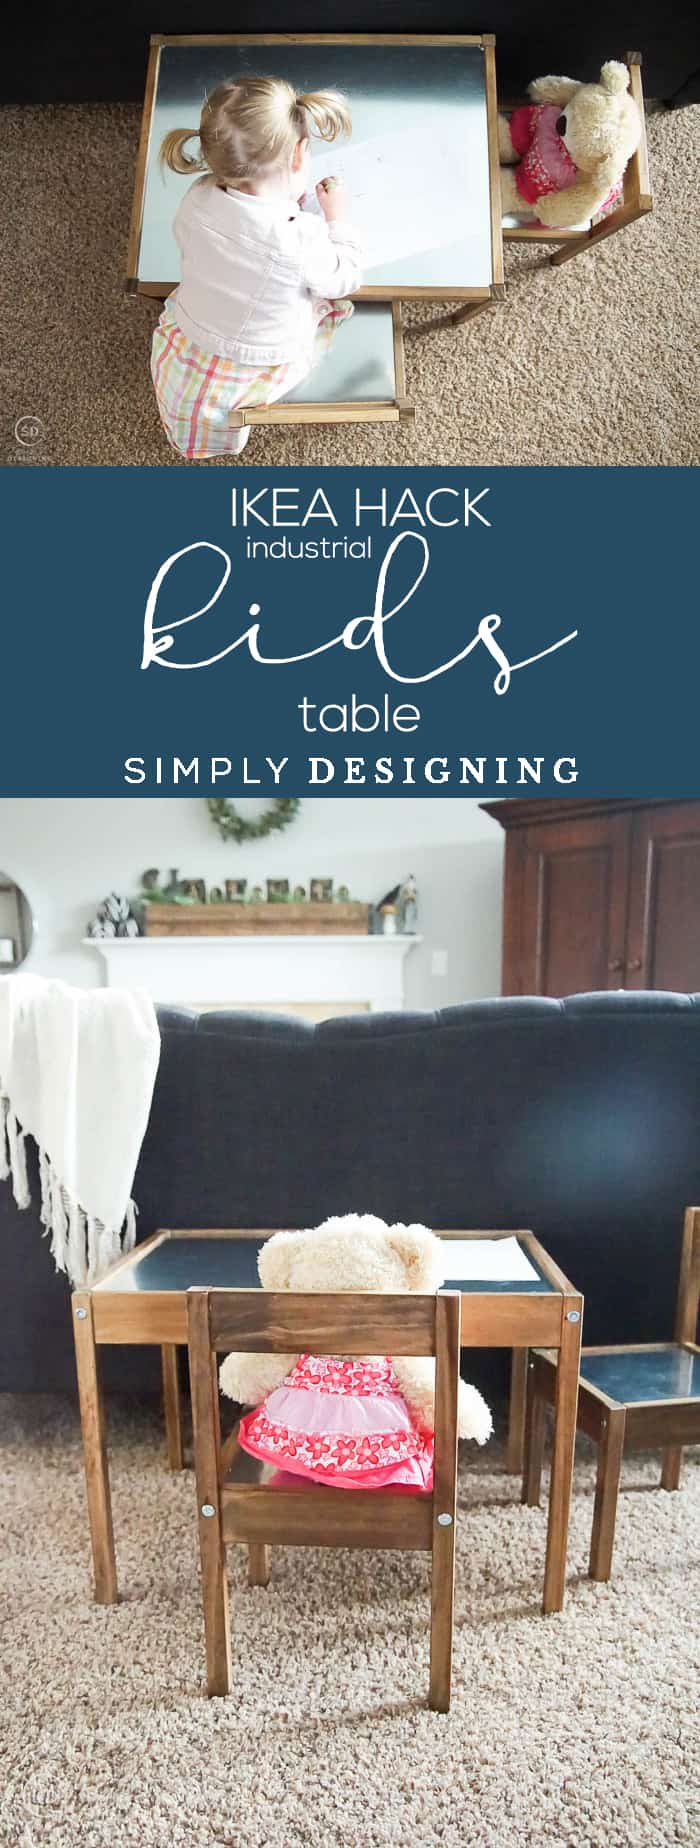 IKEA Hack - Industrial Kids Table - learn how to turn an ordinary LATT kids table and chairs into a beautiful farmhouse kids table